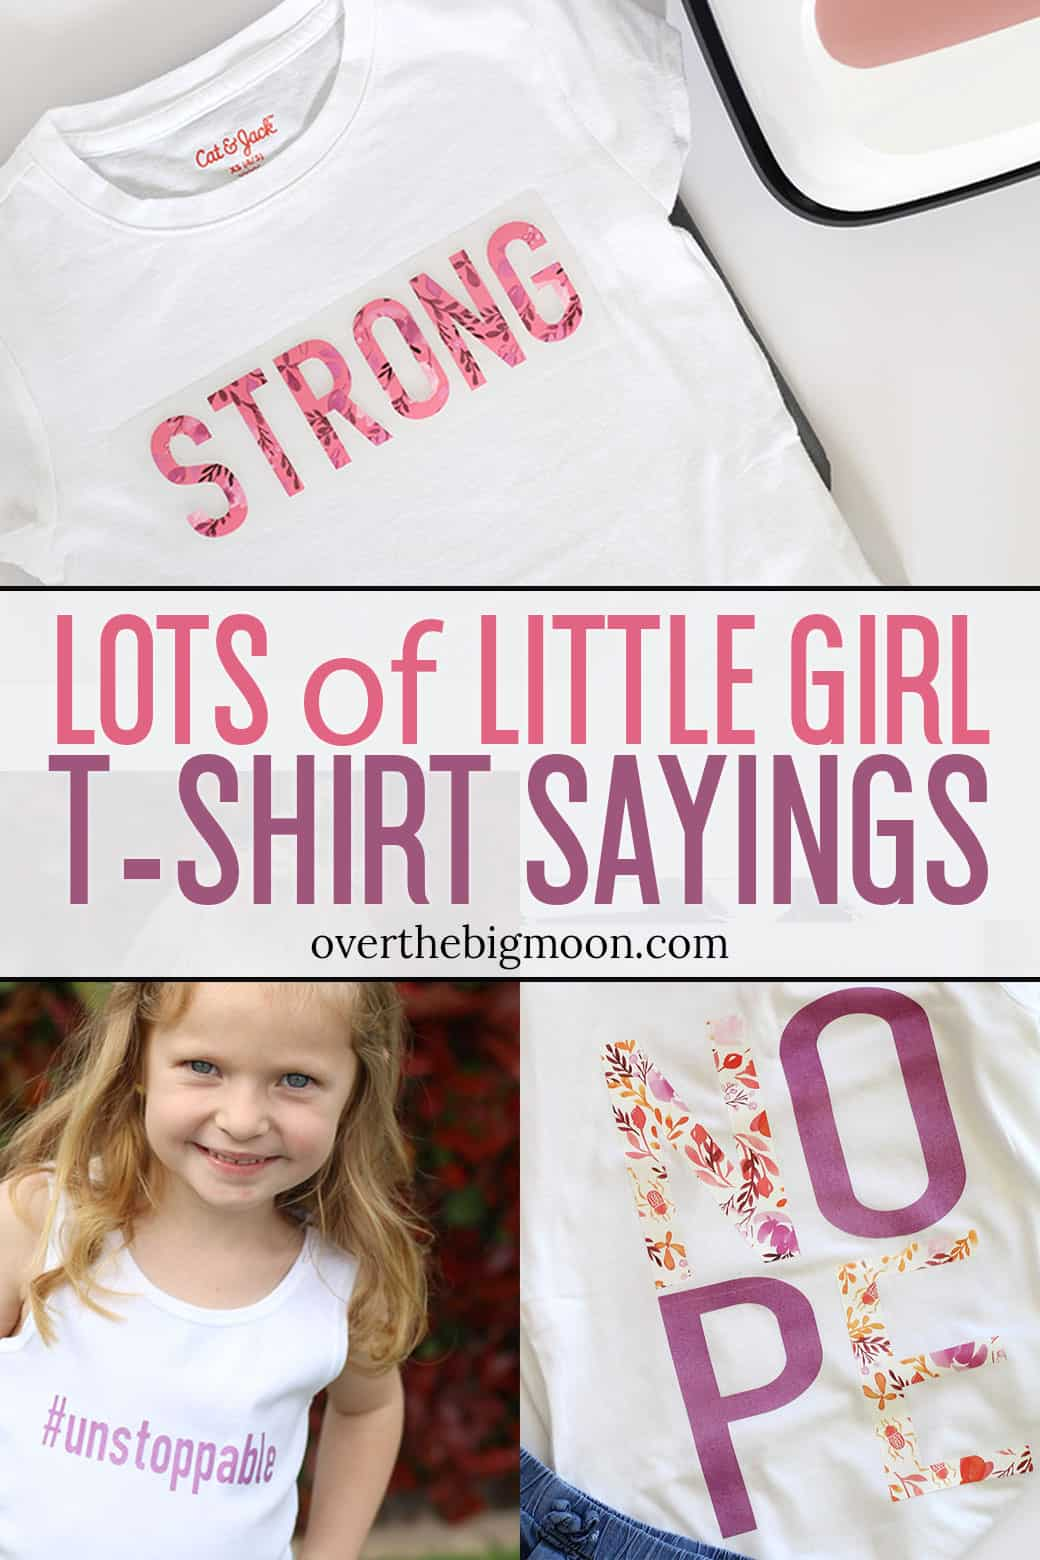 Lots of Little Girl T-Shirt Sayings -- made with the the Natalie Malan Patterned Iron On Vinyl! From overthebigmoon.com!